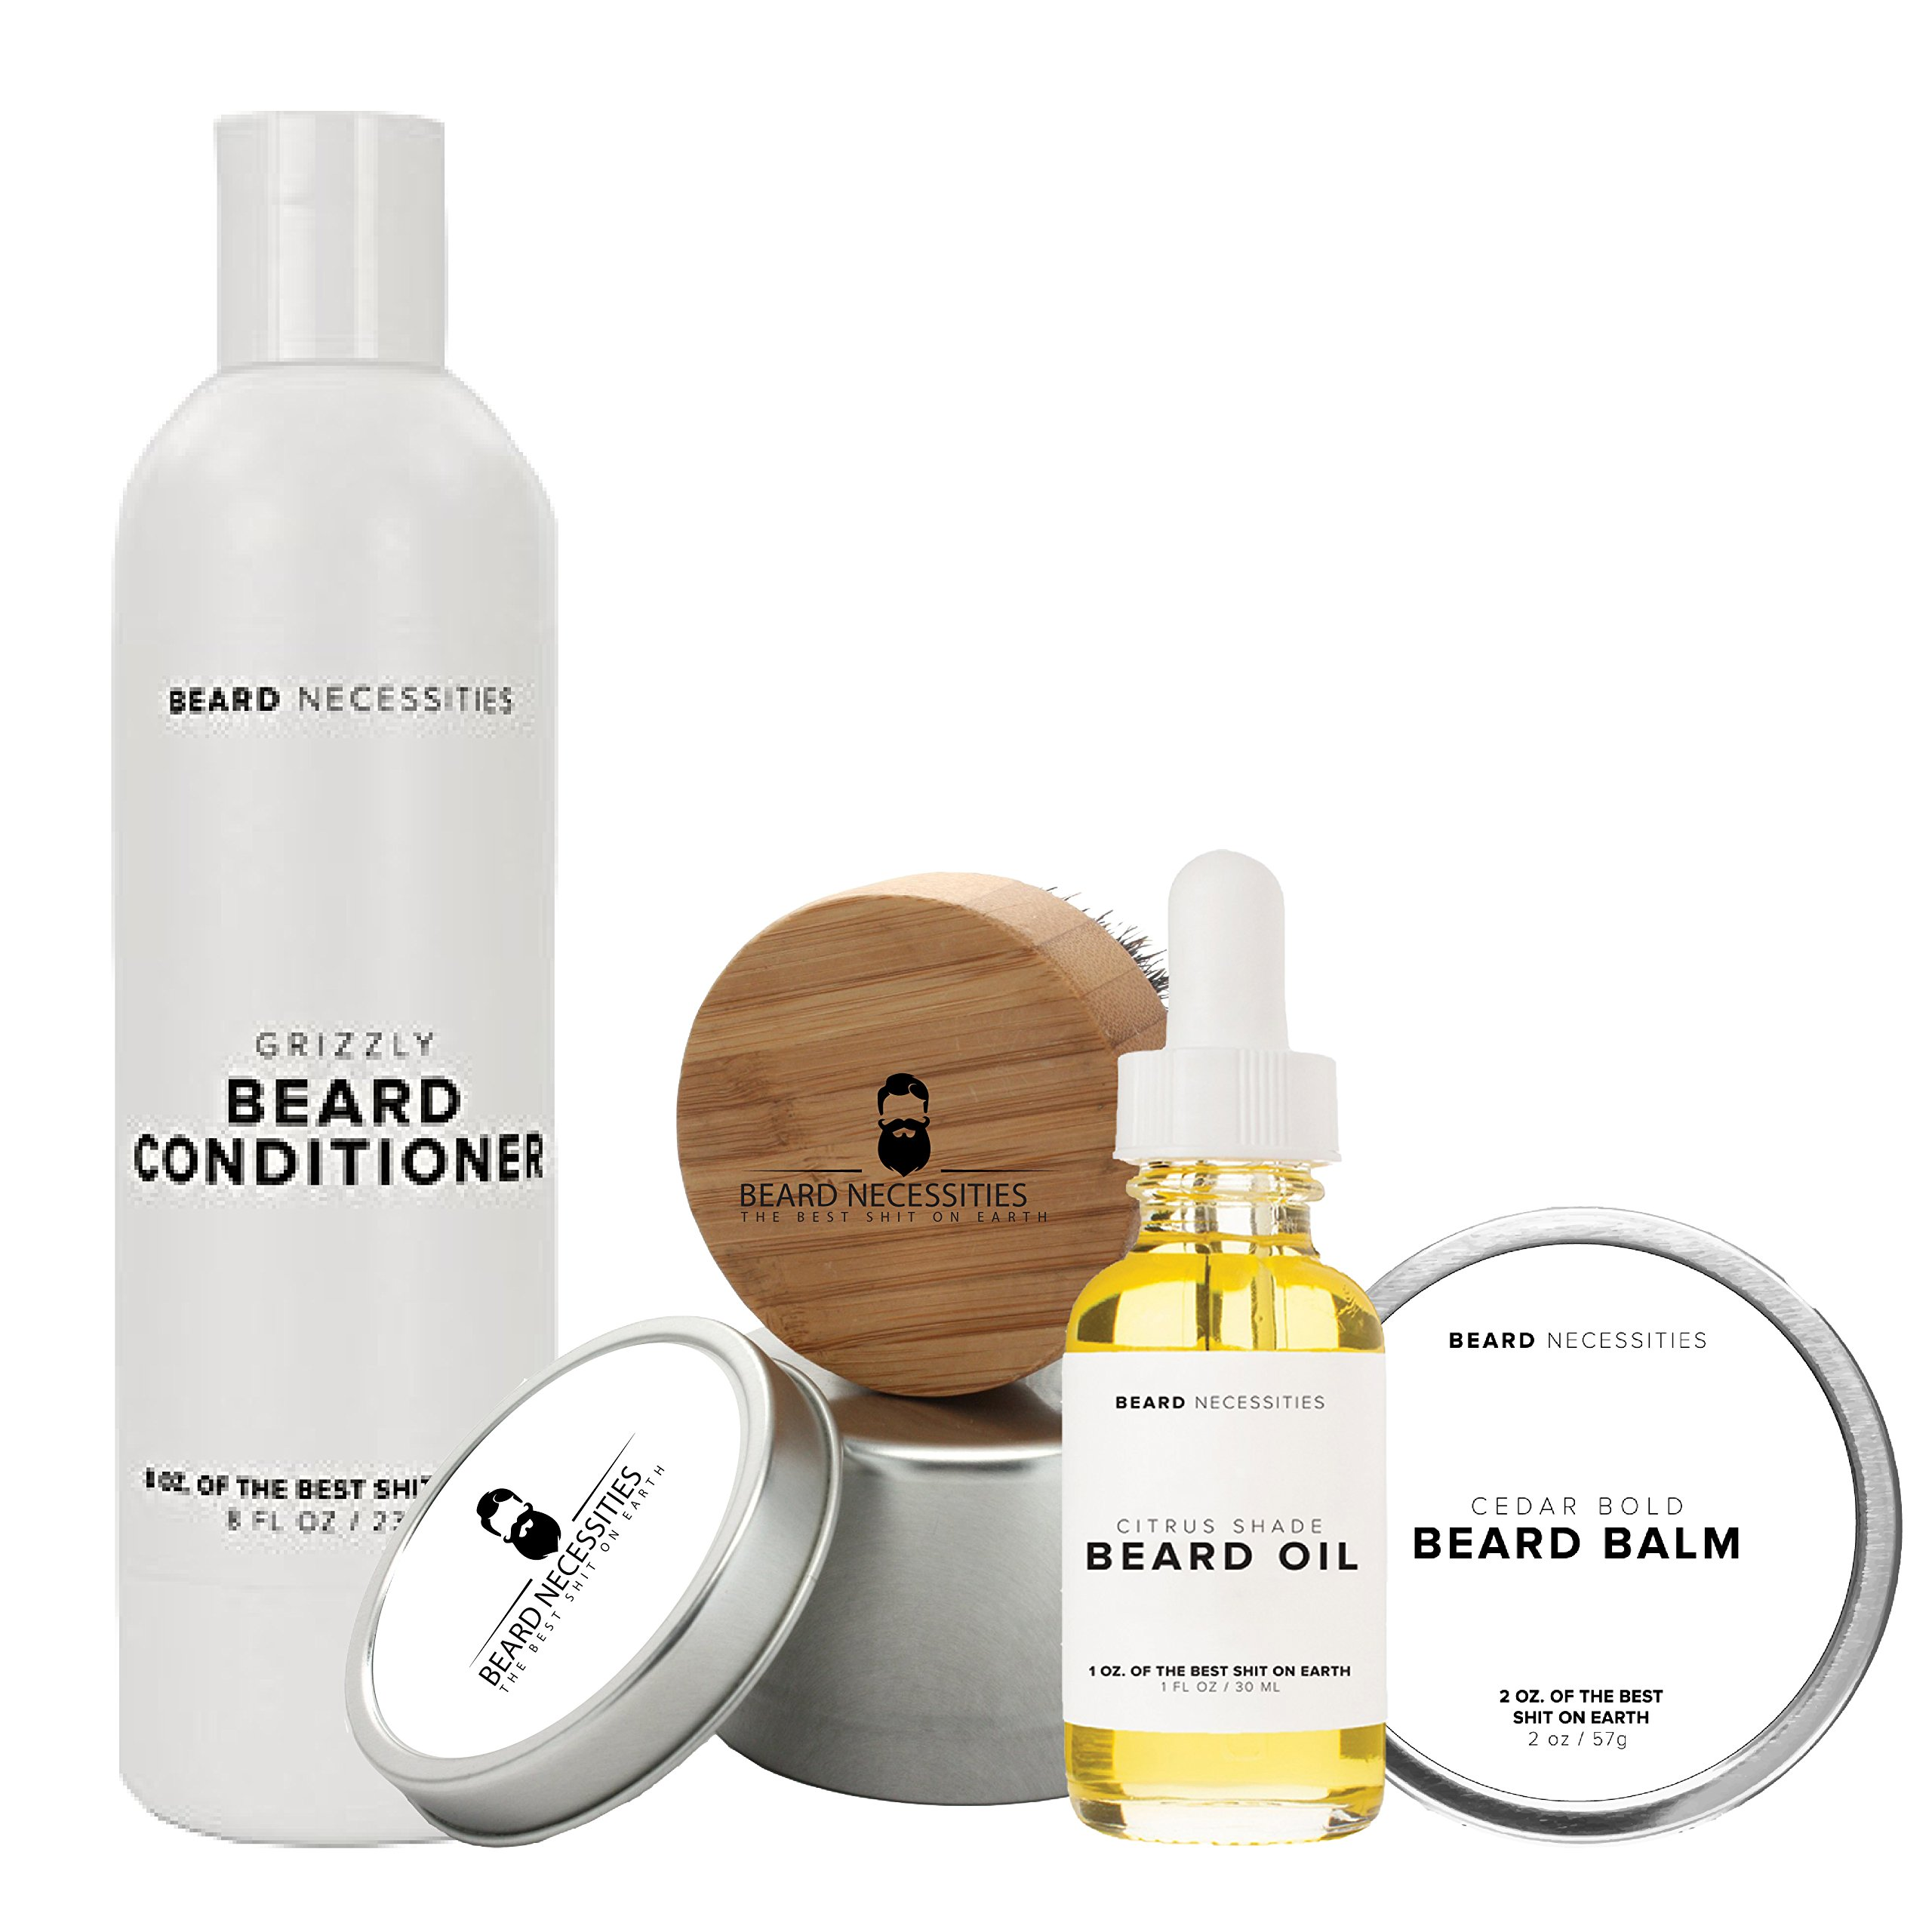 Beard Grooming Kit By Beard Necessities Set Includes Conditioner, Oil, Balm & Brush. Care For Your Beard Today!